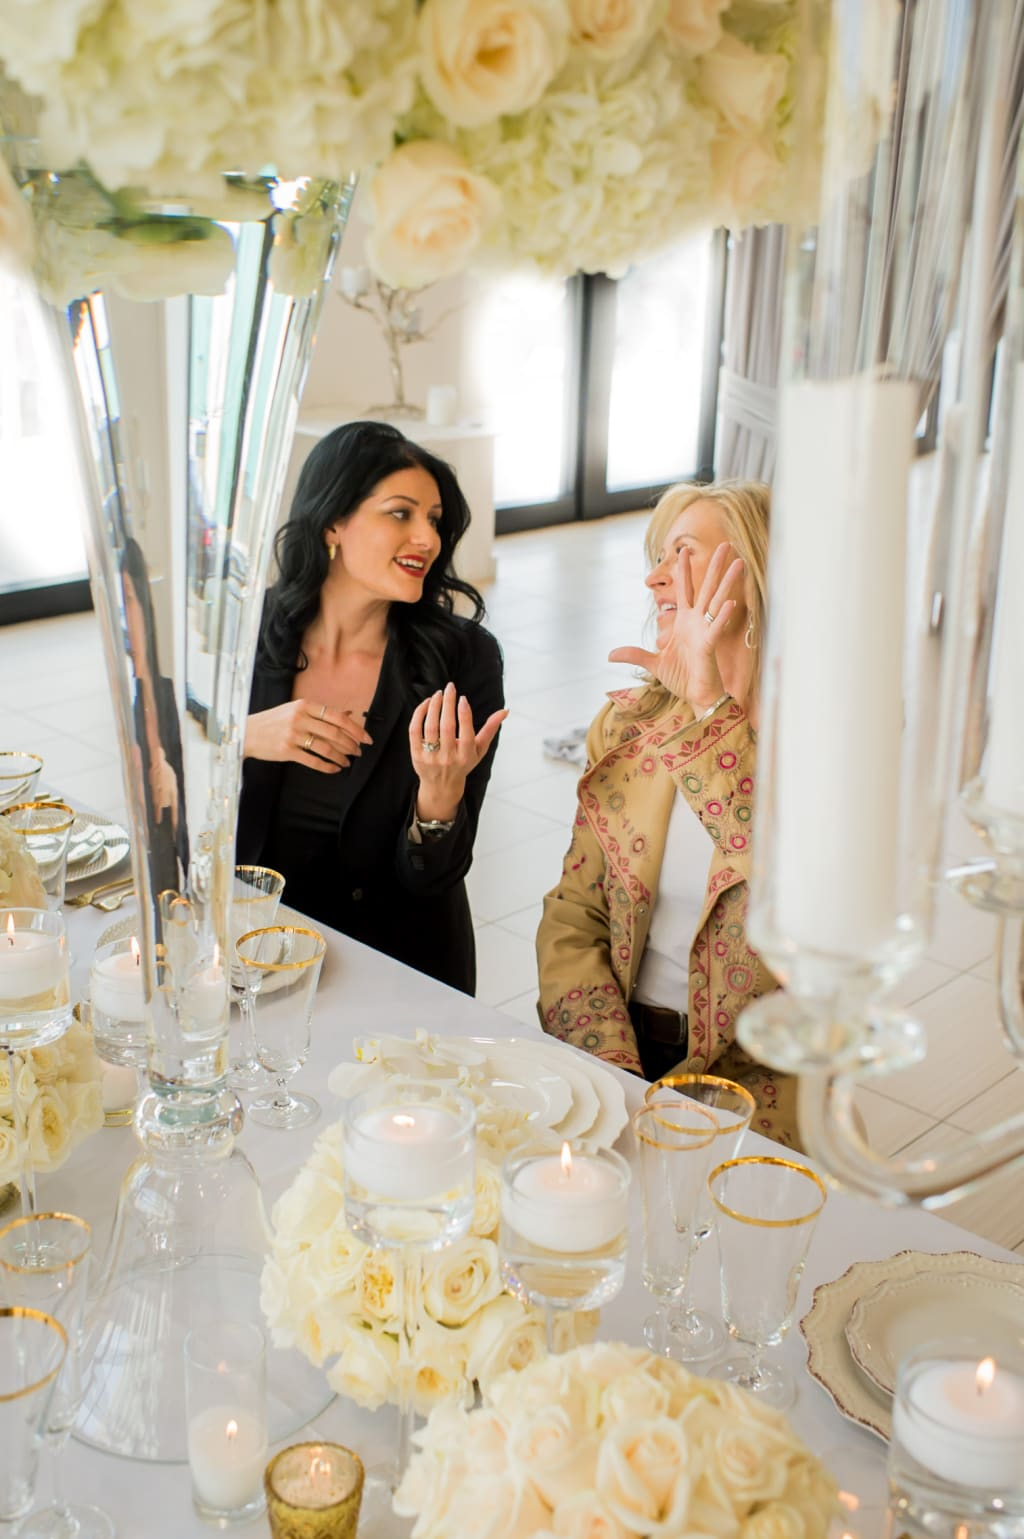 What Questions Should You Ask a Wedding Planner?